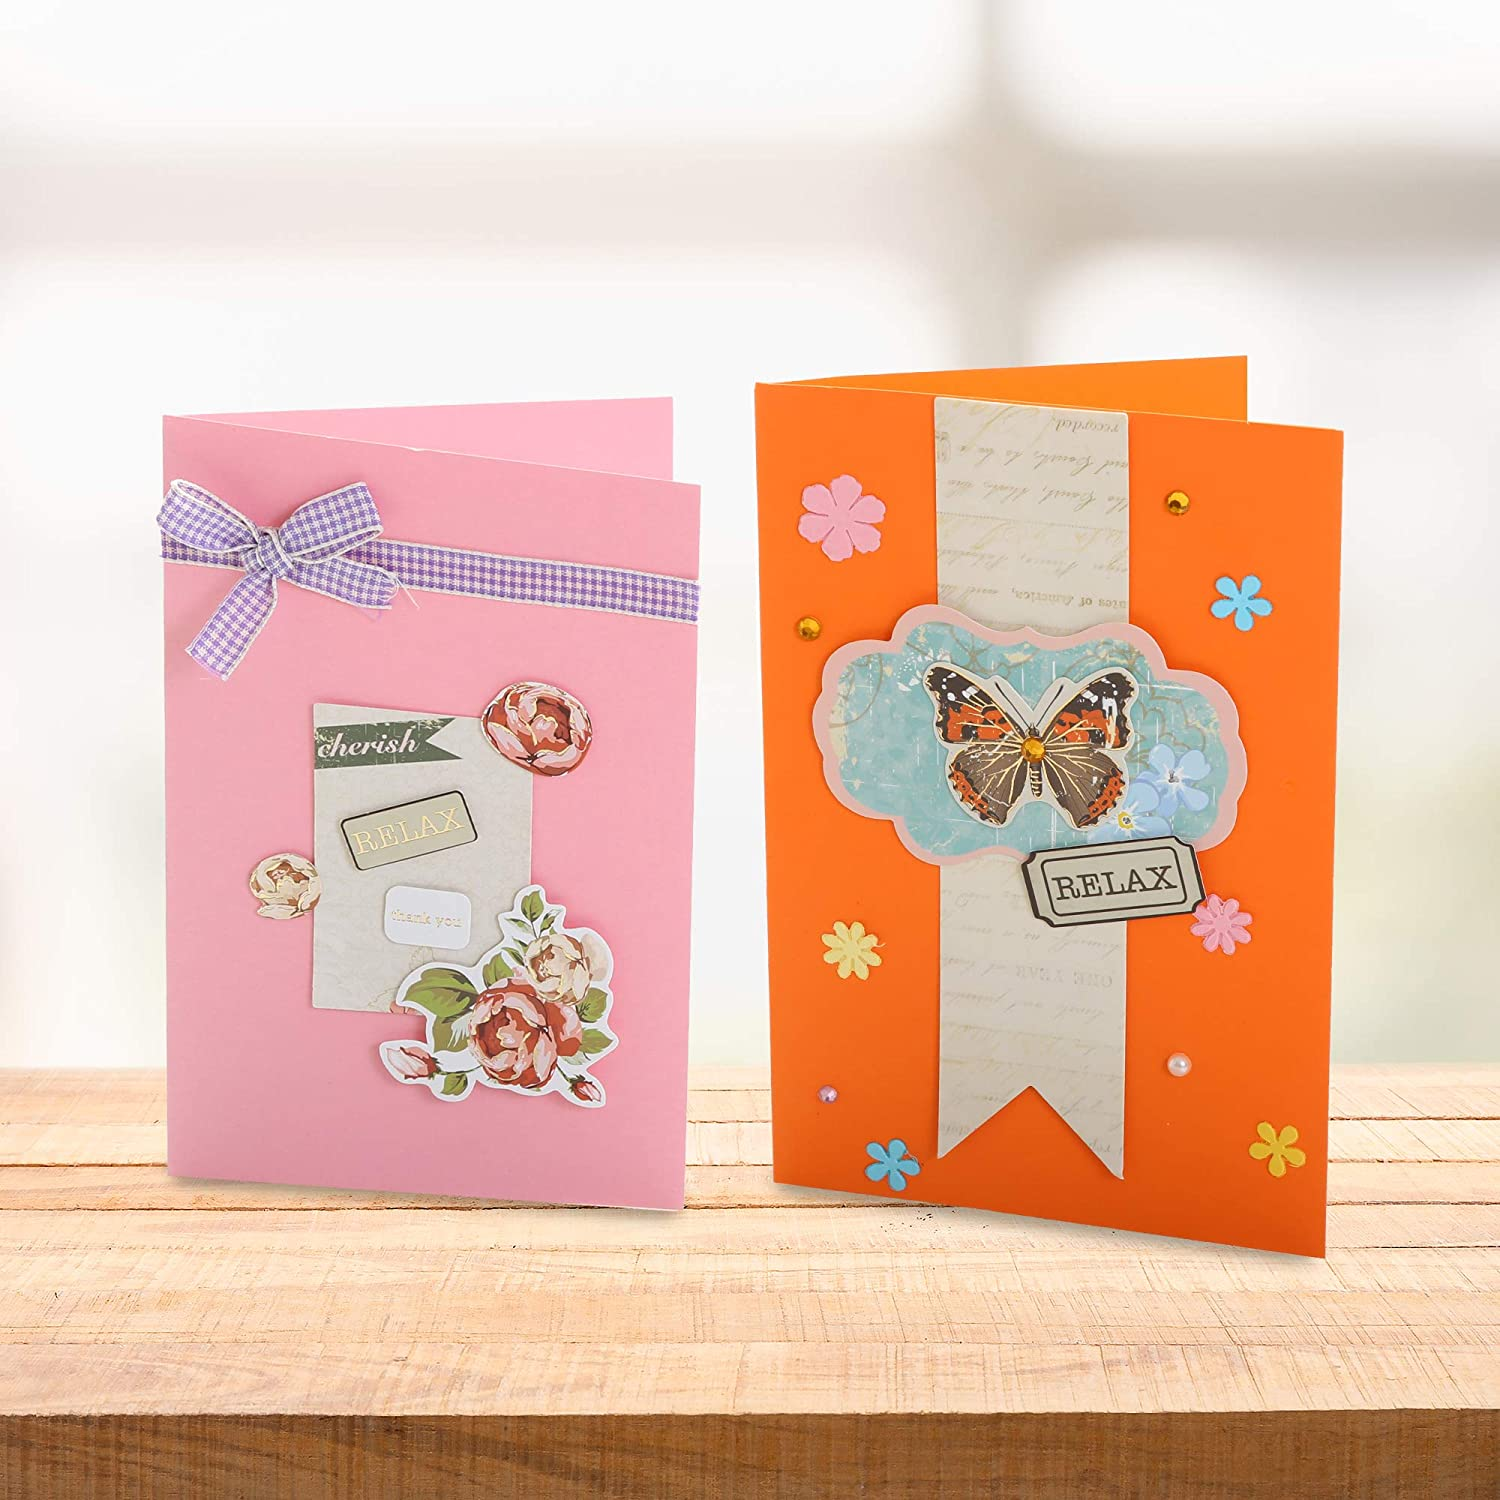 PICKME Cherish Greeting Card Making Kit Make Your Own Cards Set with Beautiful Assortment of Art Characters /& Envelopes Perfect Gift Making Kit Create Your Personalized Birthday /& Thank You Card